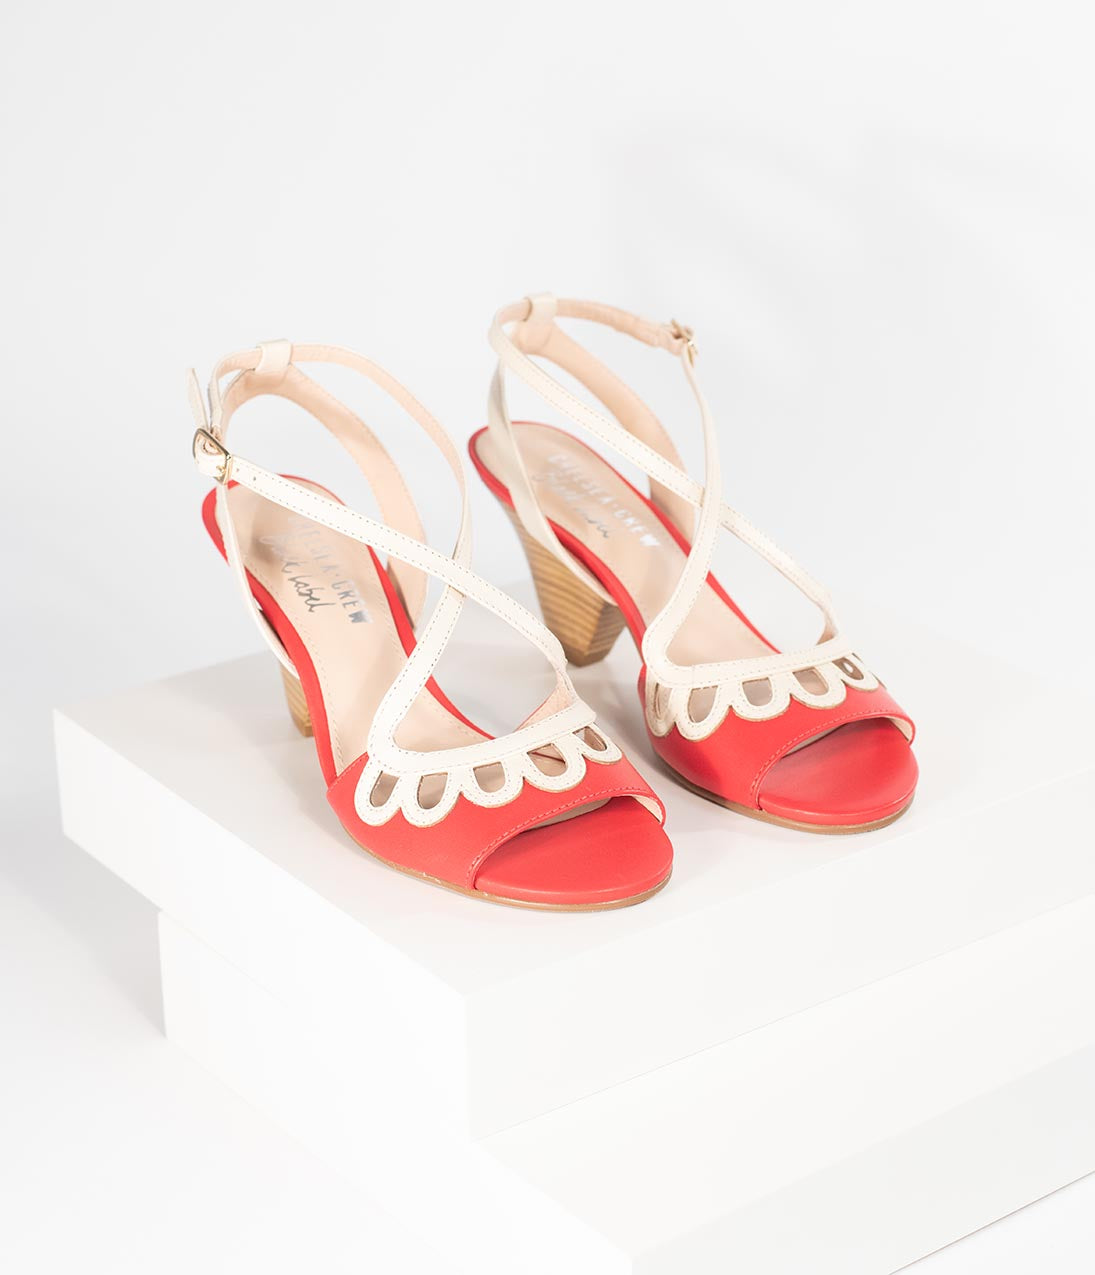 1950s Style Shoes | Heels, Flats, Saddle Shoes Chelsea Crew Red  Ivory Leather Peep Toe Judith Heels $88.00 AT vintagedancer.com